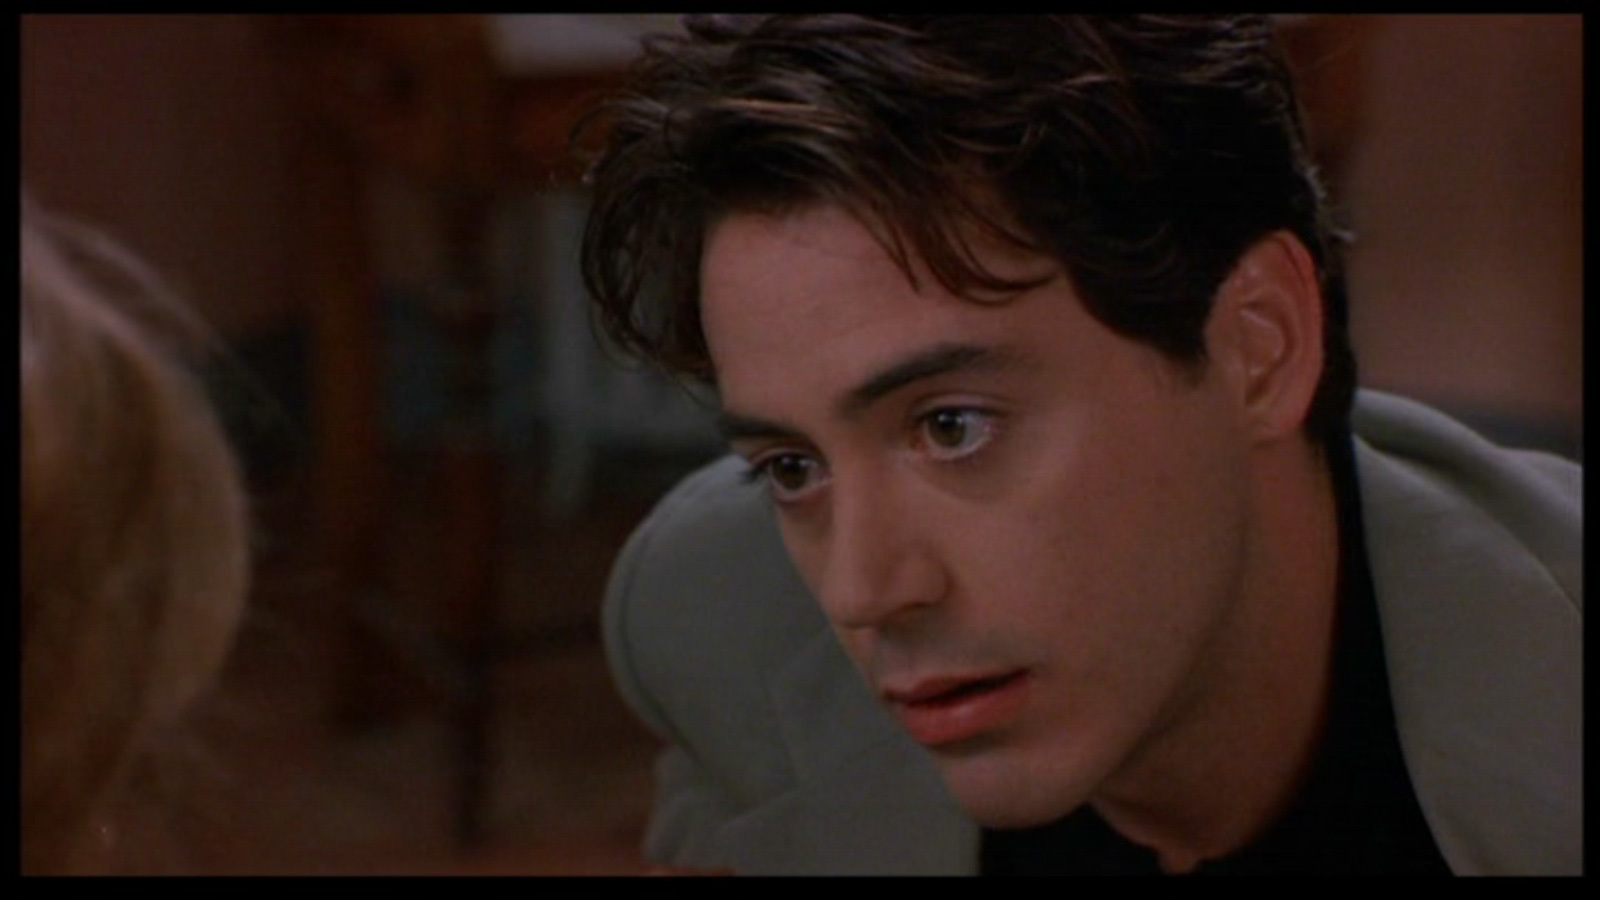 Robert in 'Only You'